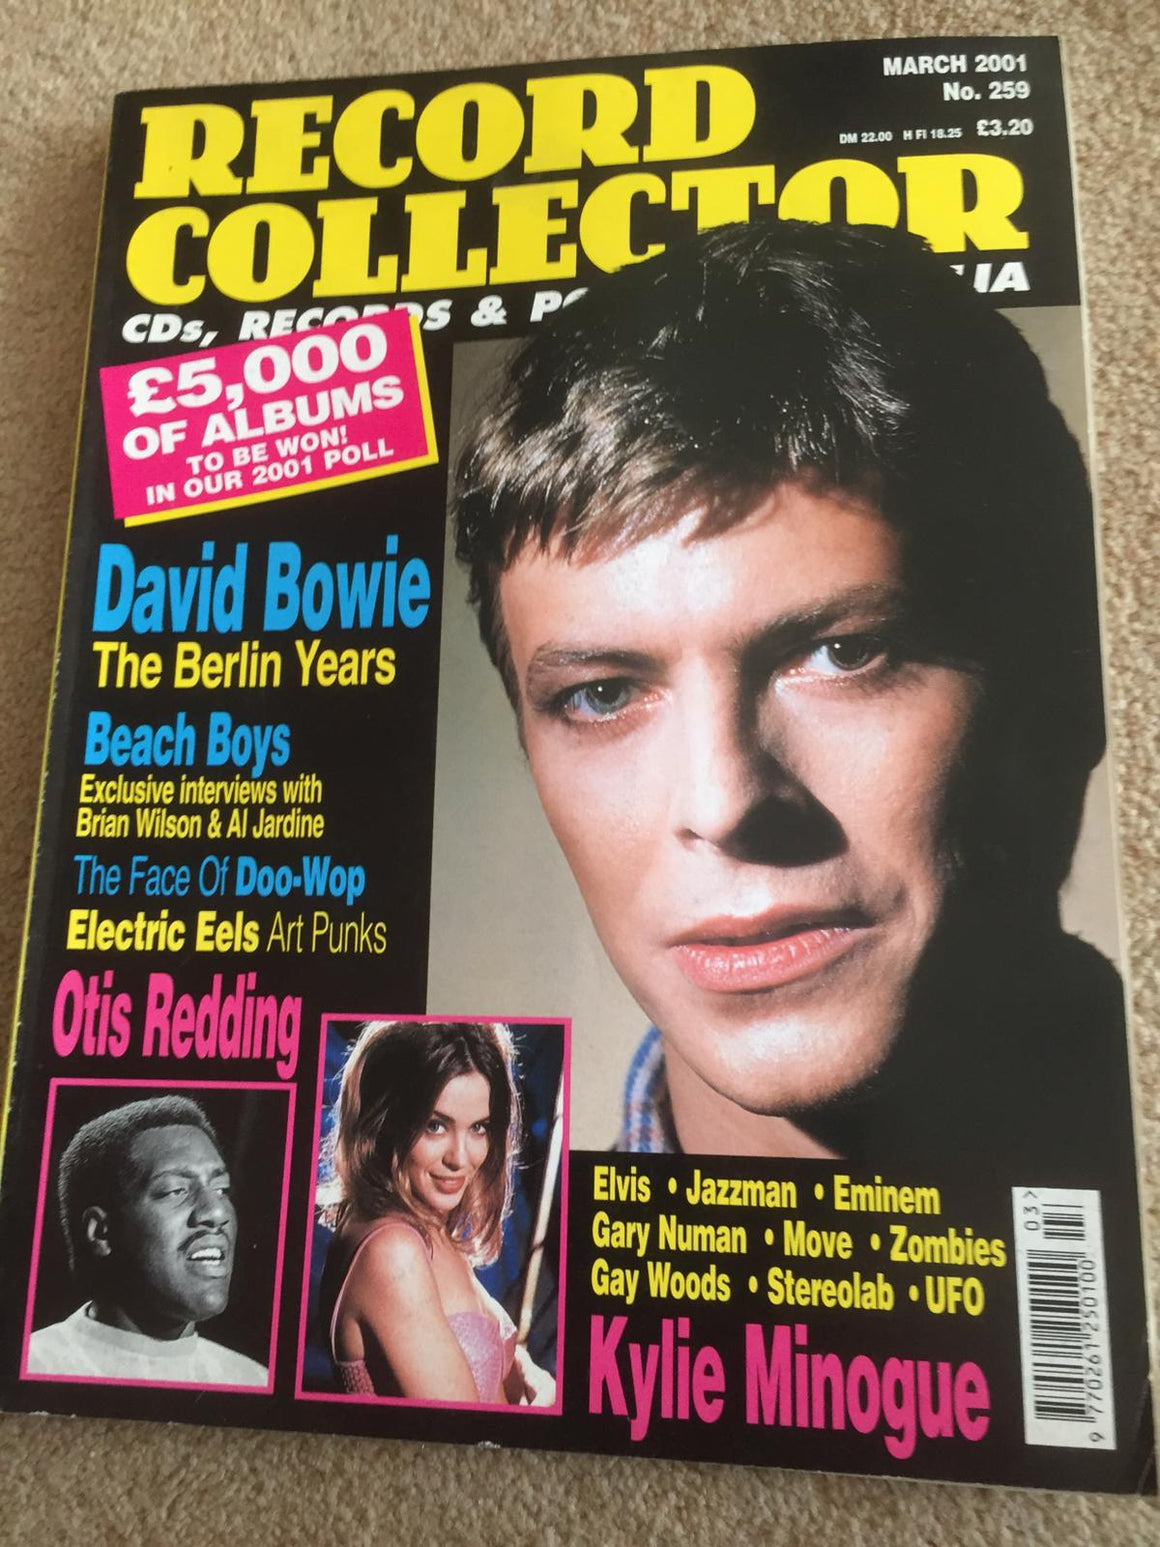 Record Collector Magazine March 2001, No. 259 David Bowie Otis Redding Kylie Minogue